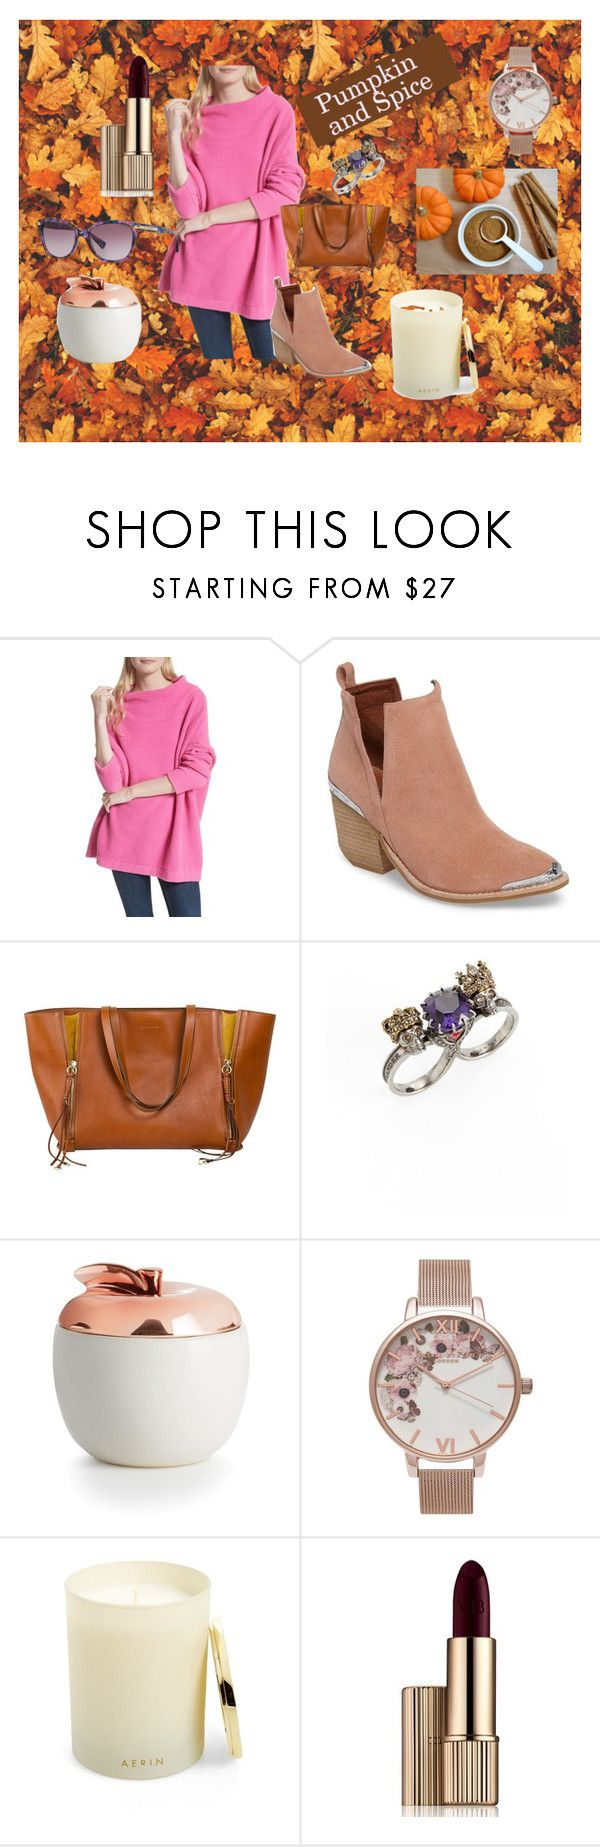 """""""Pumpkin and Spice...."""" by adryalamos on Polyvore featuring Free People, Jeffrey Campbell, Alexander McQueen, Illume, Olivia Burton and AERIN"""